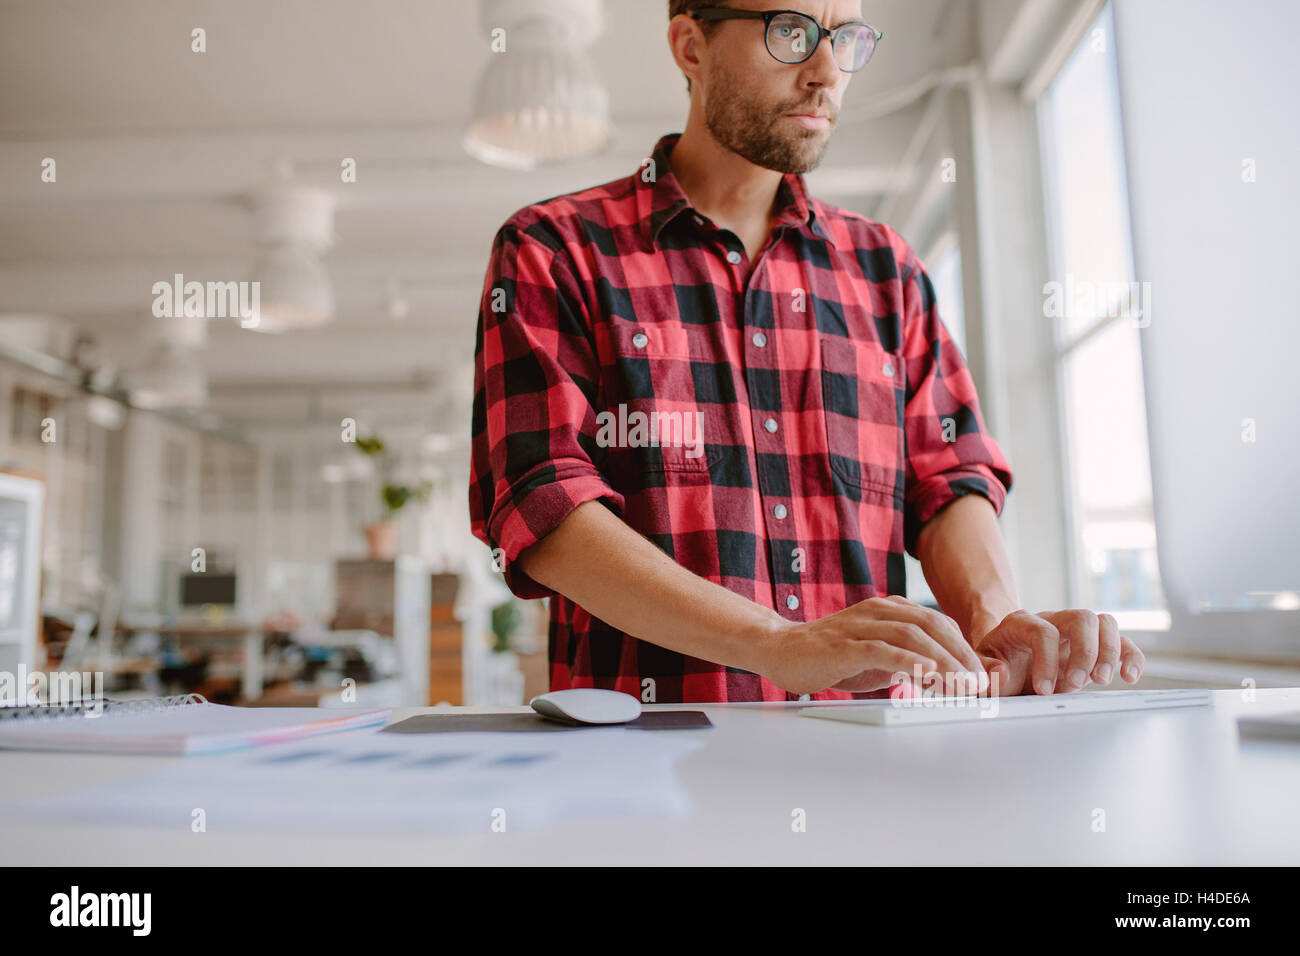 Shot of young man standing at his desk and working on computer. Businessman using computer in modern office. - Stock Image